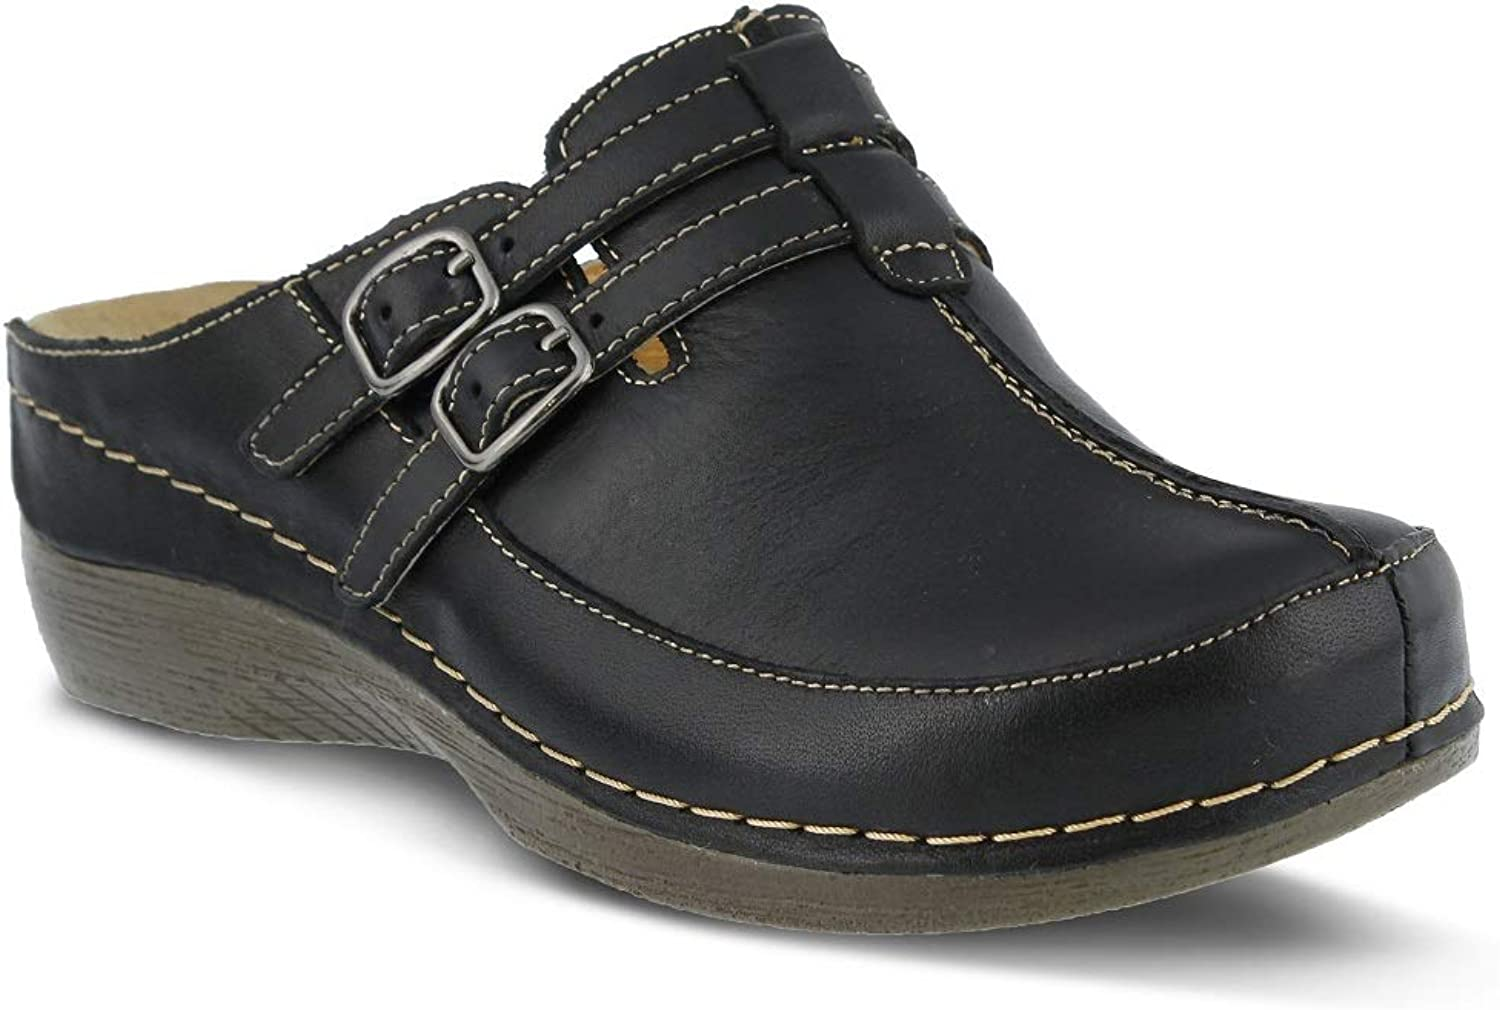 Spring Step Women's Happy Clog & Mules   color Black   Leather Clog & Mules